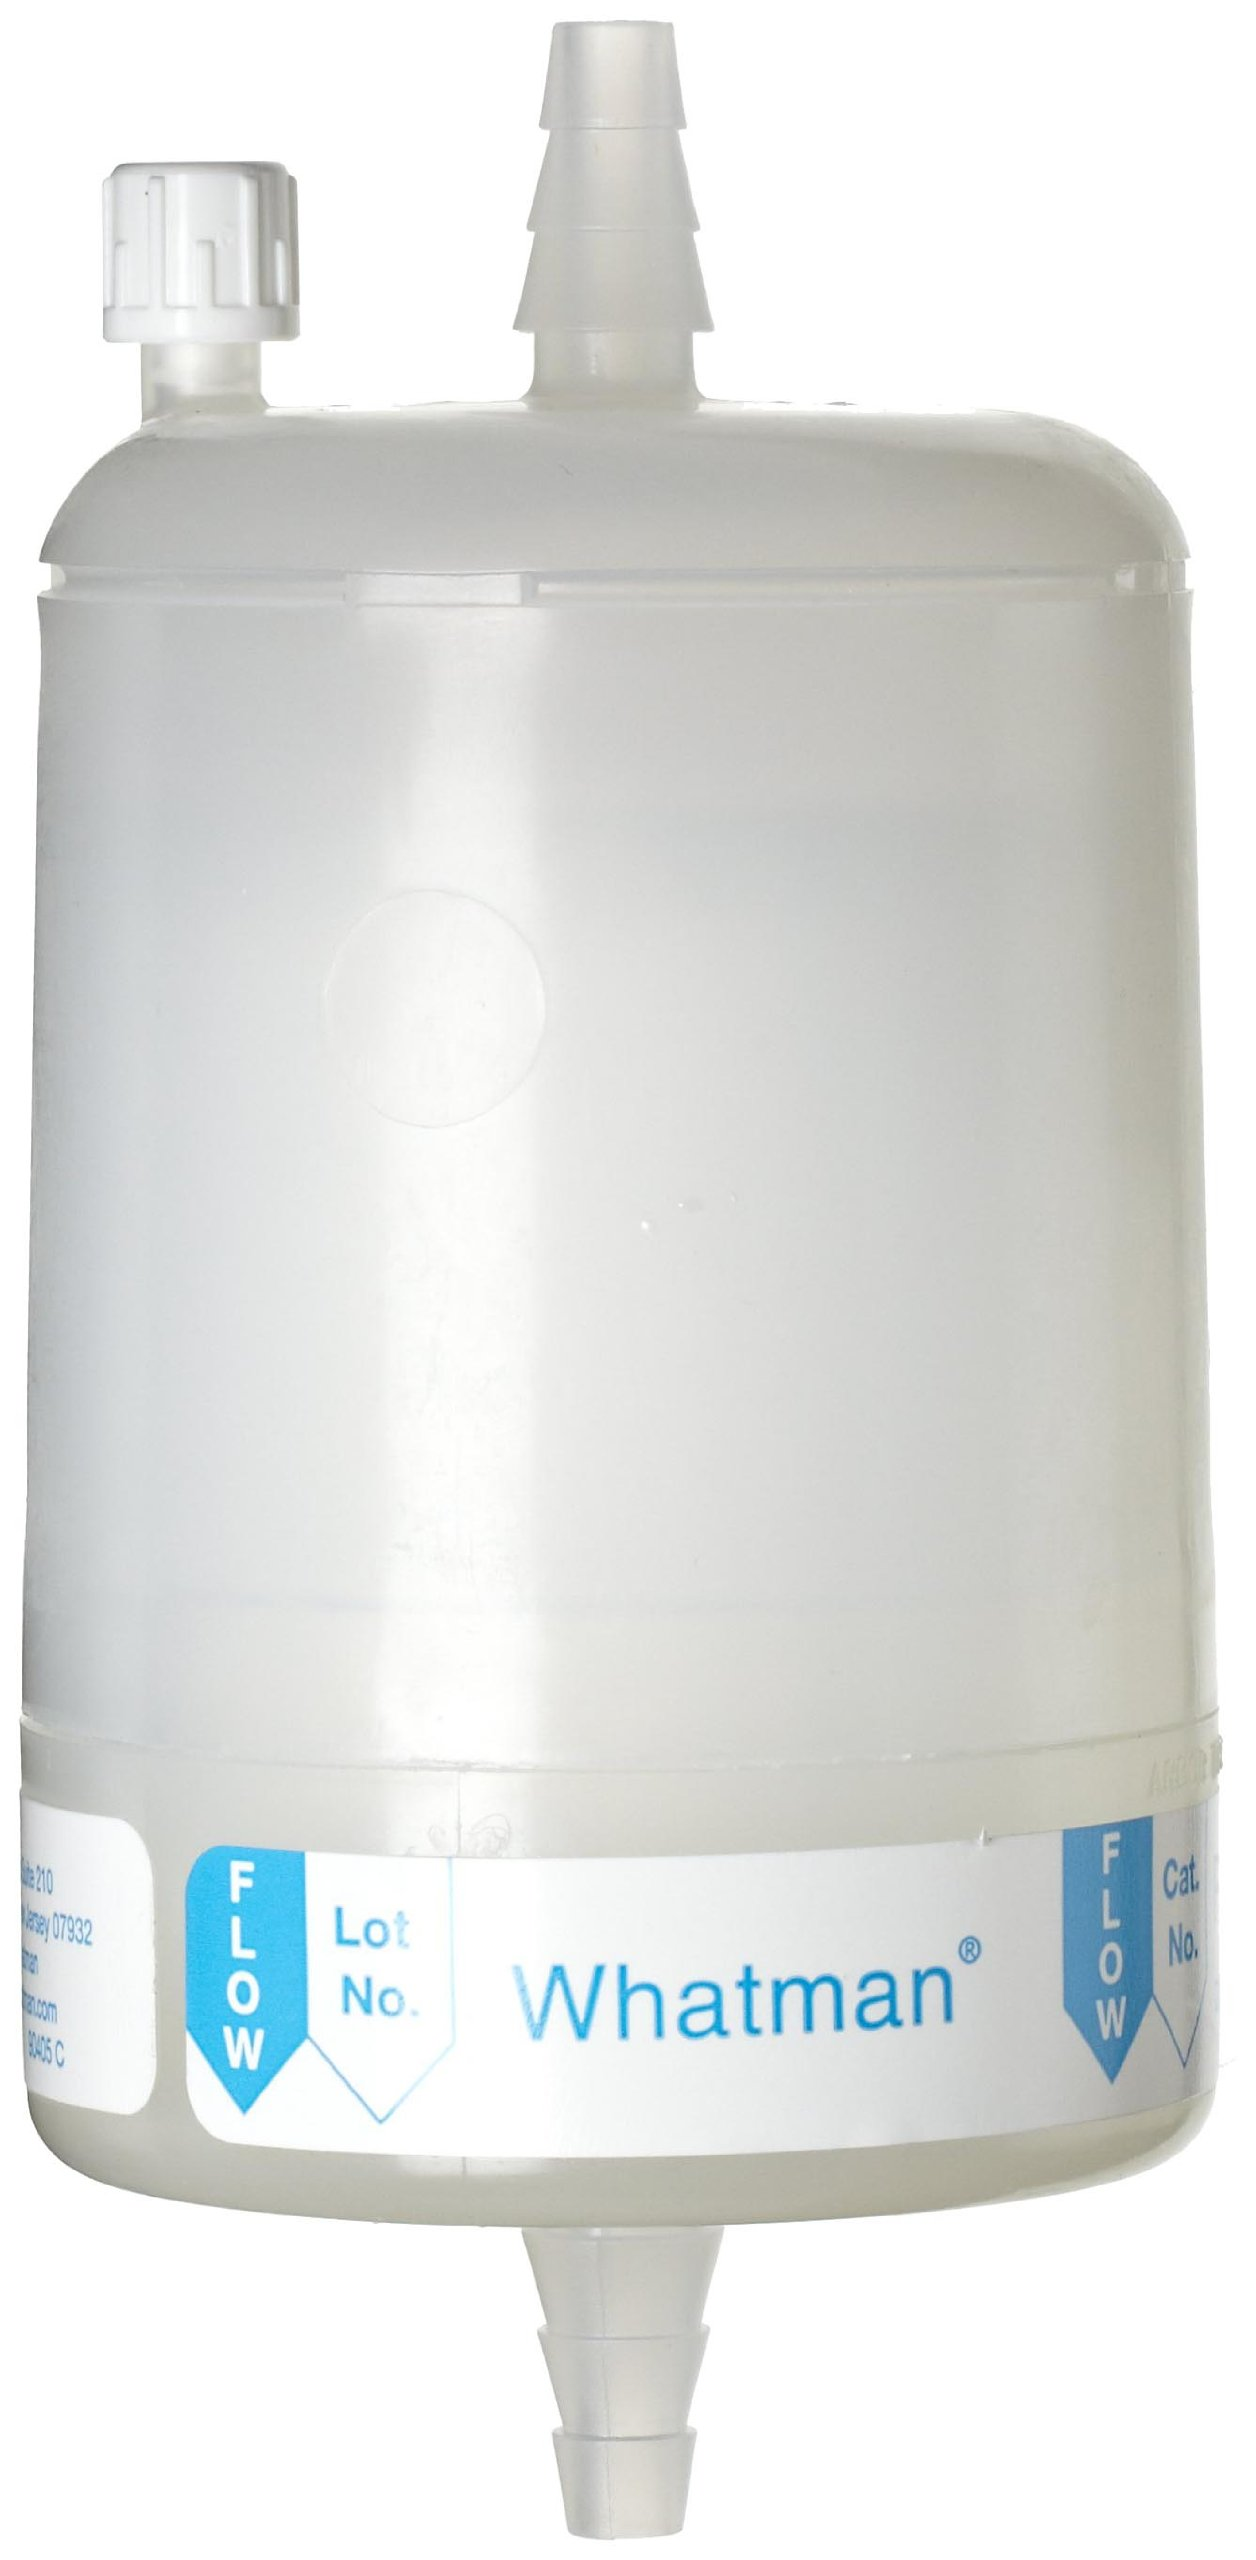 Whatman 6700-7504 Polycap TF 75 PTFE Membrane Capsule Filter with SB Inlet and Outlet, 60 psi Maximum Pressure, 0.45 Micron by Whatman